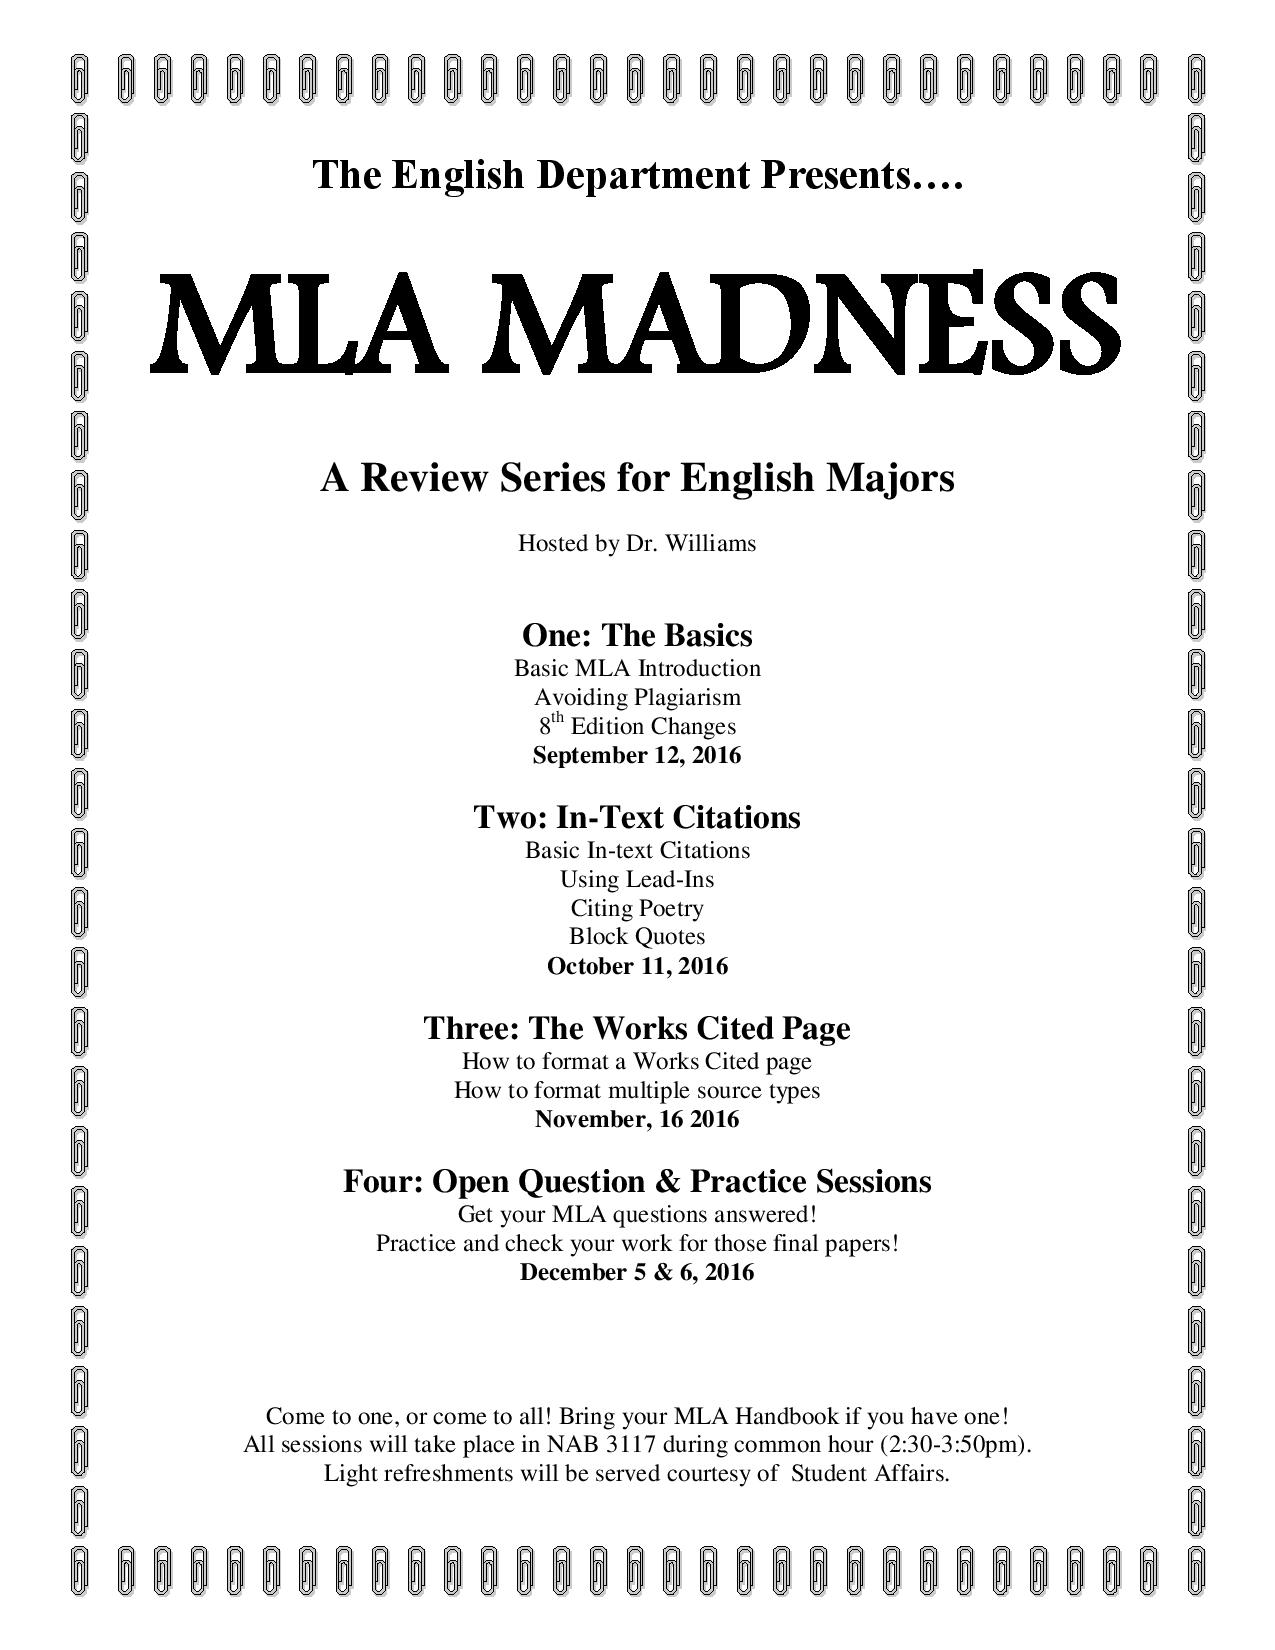 Mla Madness Session Iii: The Works Cited Page, 8th Edition (w 11 Quote How  To Cite A Website